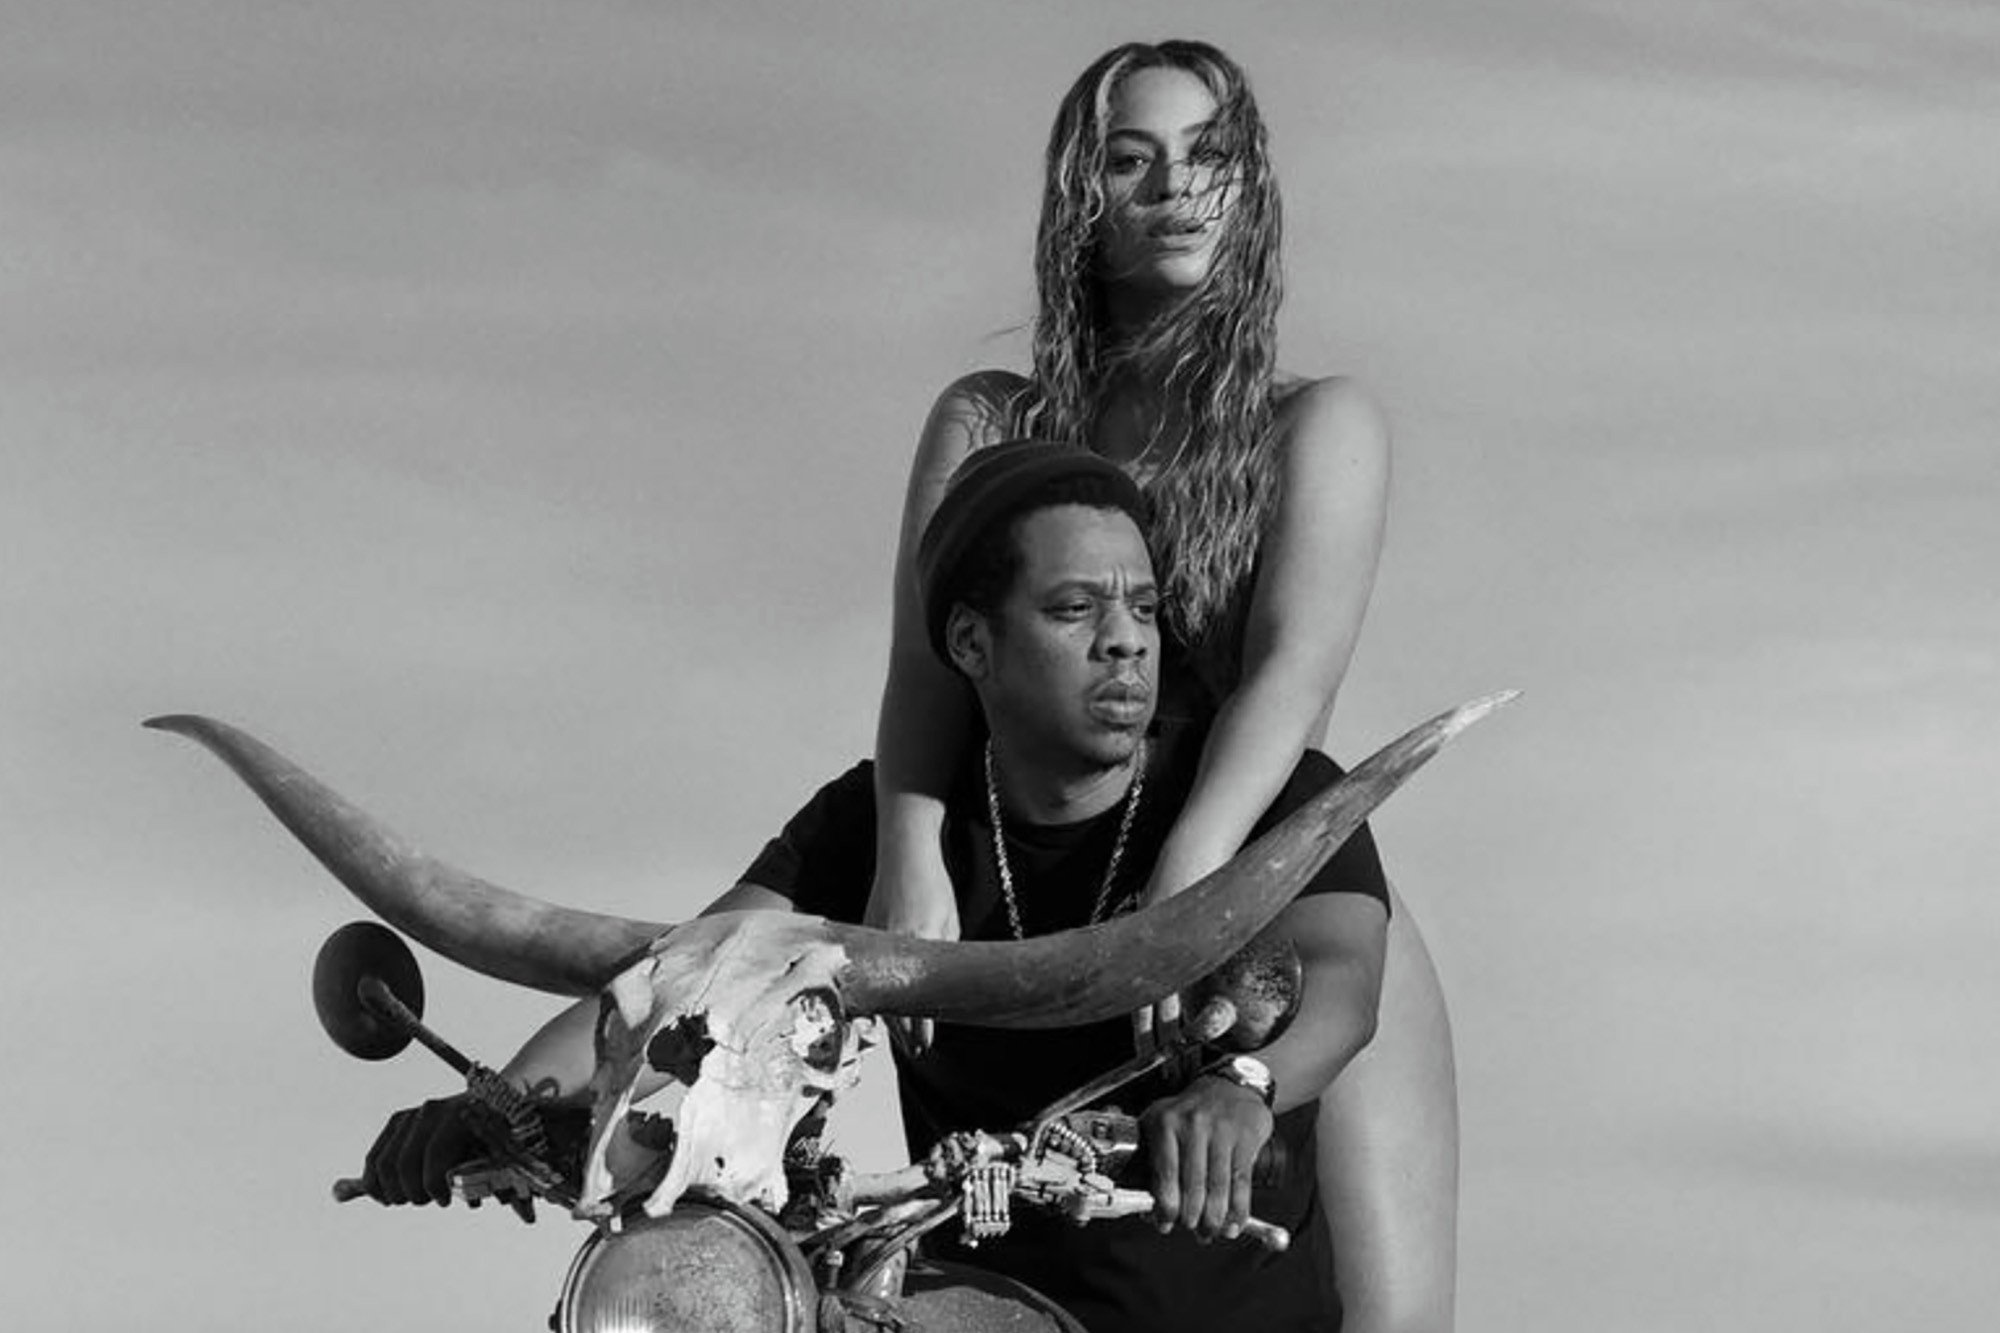 Beyoncé and Jay-Z going on tour again